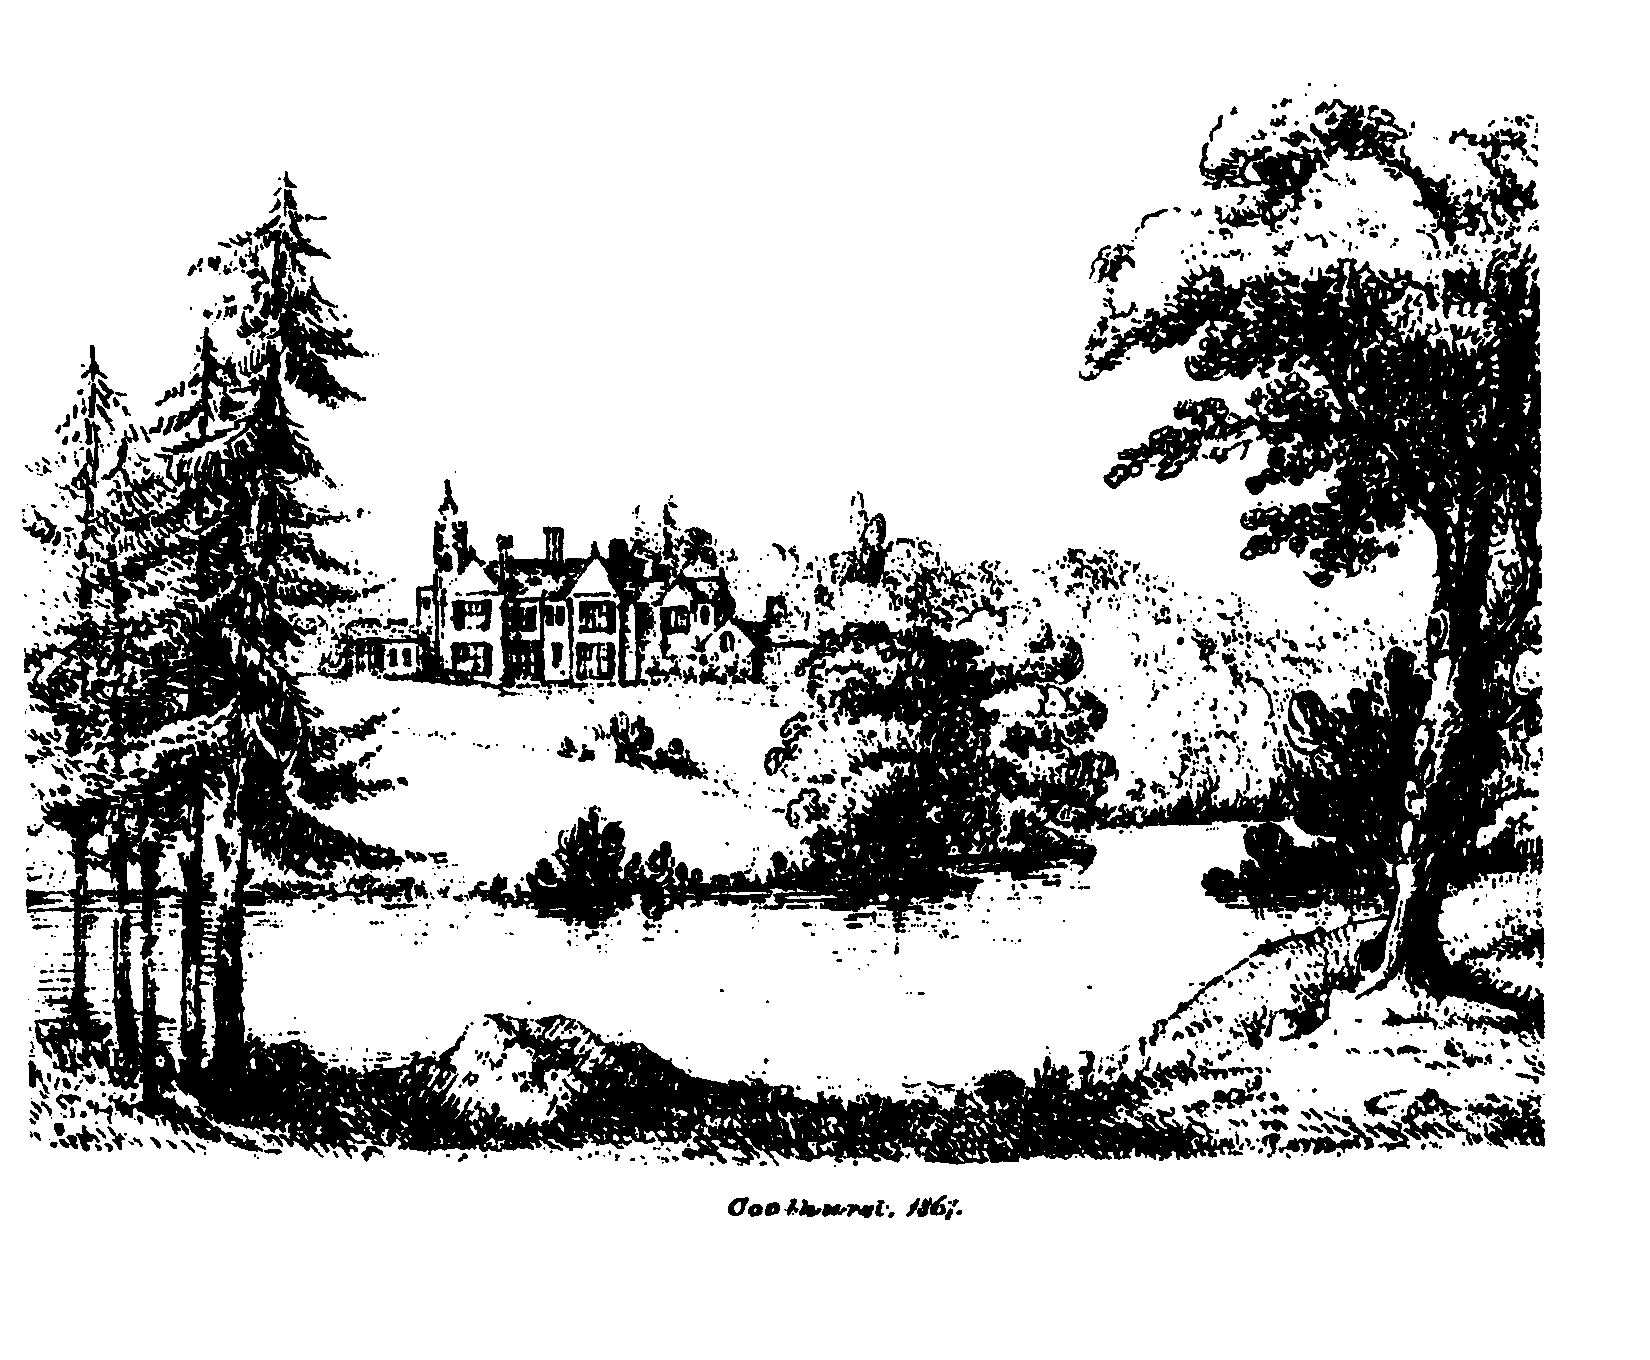 Coolhurst, as it appeared in 1867.